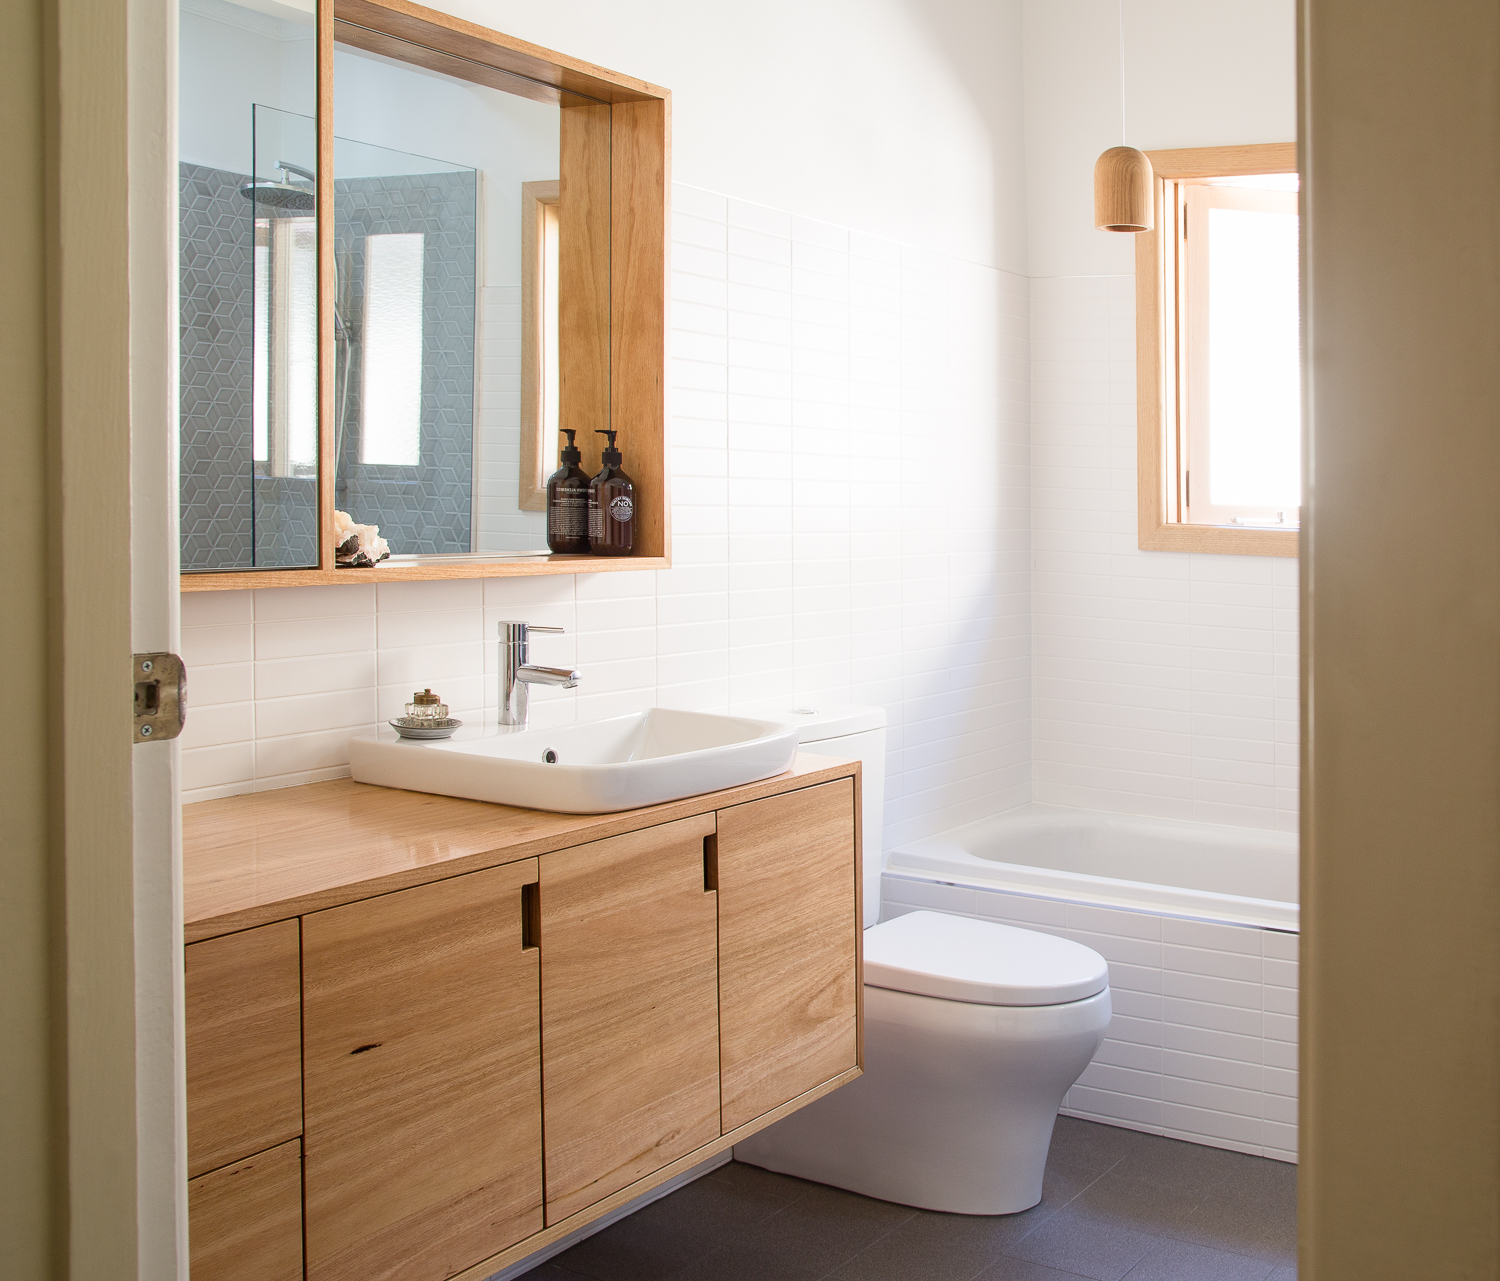 Auld Design bathroom cabinet and storage unit | Furniture Design Melbourne and Geelong